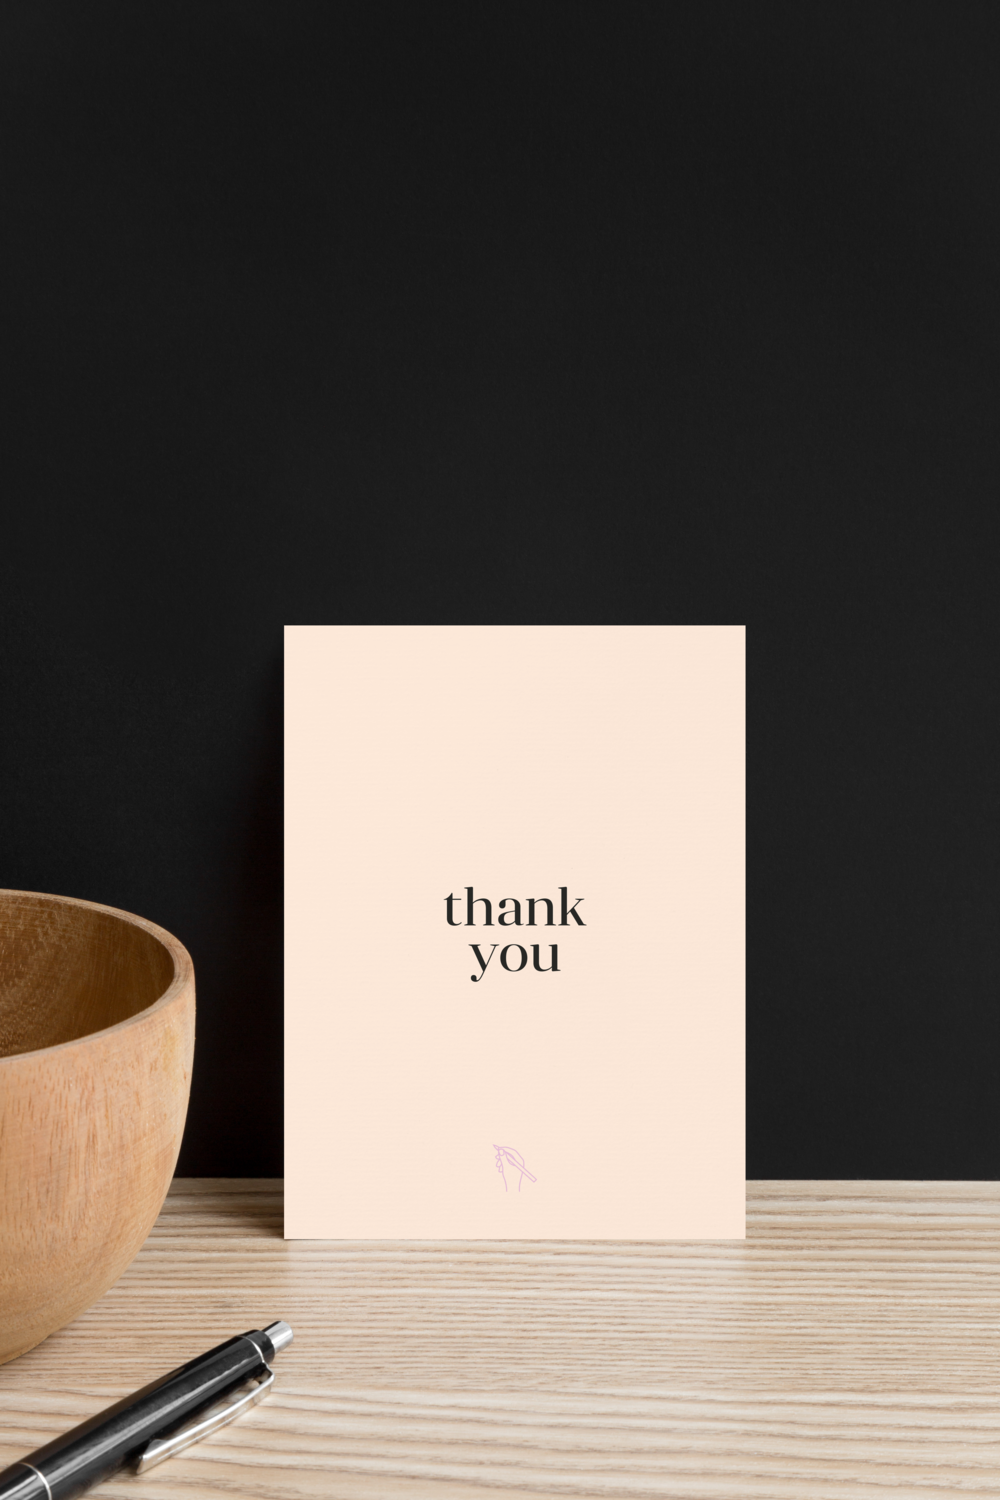 Peach thank you card with line drawing icon of a hand for Zafira Rajan designed by Salt Design Co.